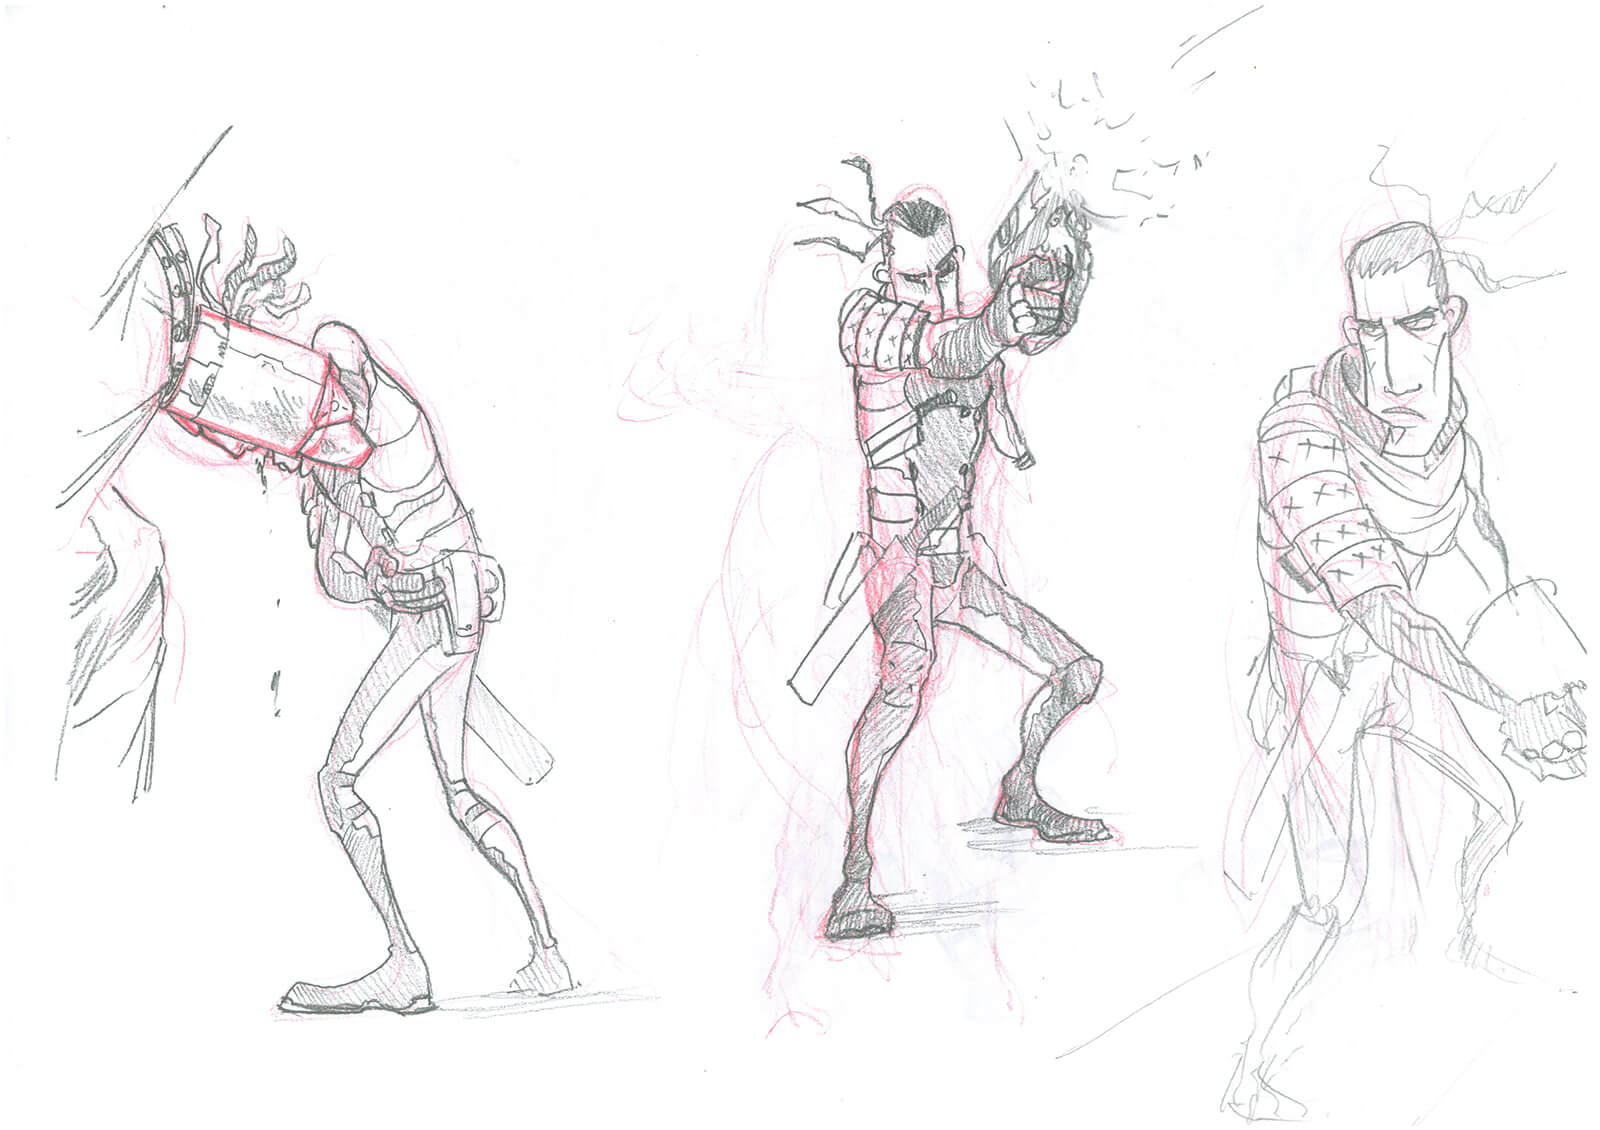 Red and black sketches of a tall, thin man in body armor leaning against a wall hurt, shooting, and glaring